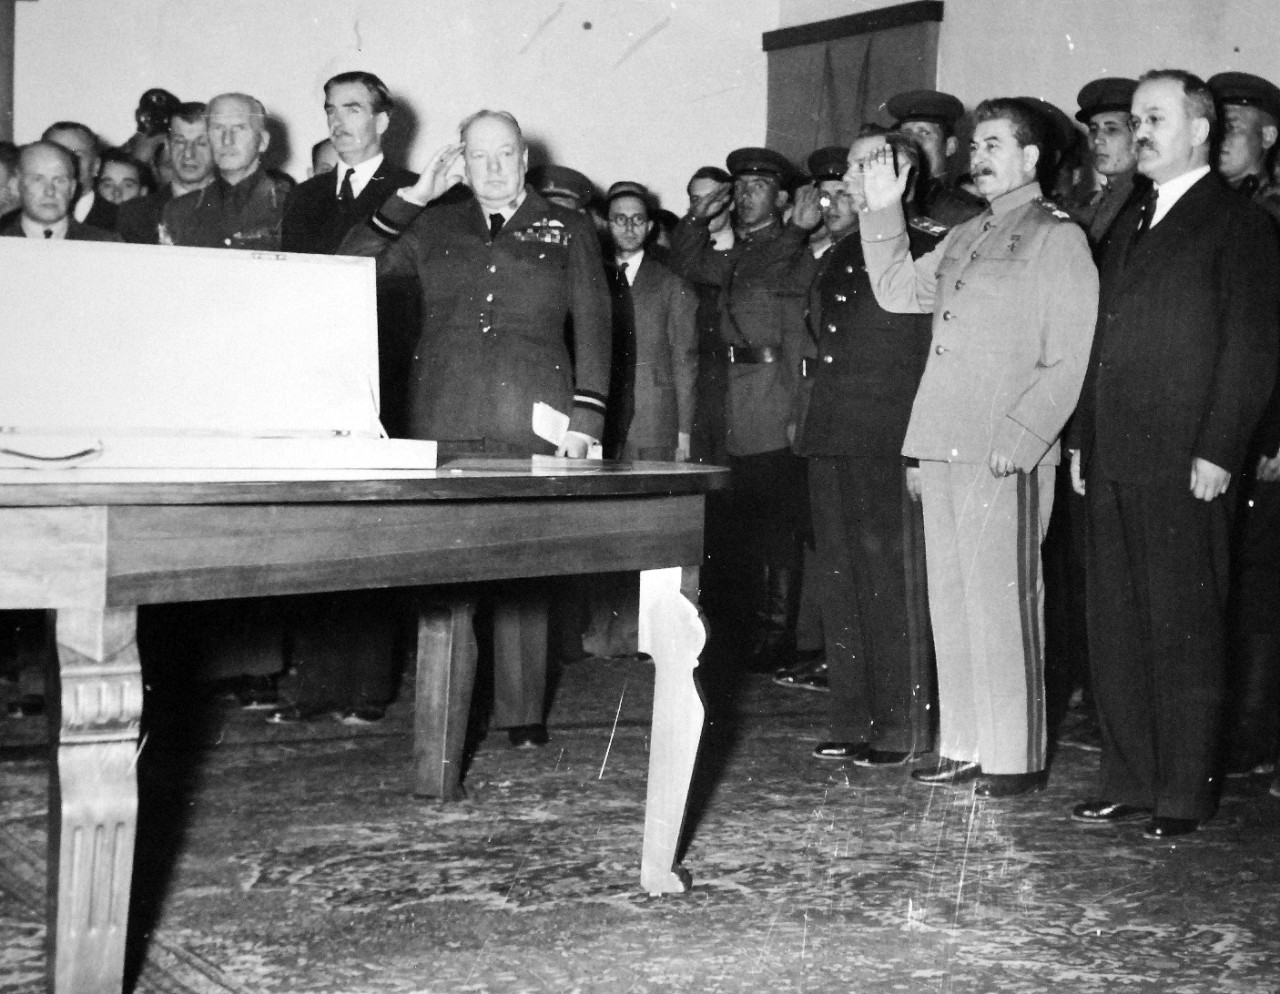 Lot 11597-4:  Tehran Conference, November-December 1943.   The presentation of the Stalingrad sword in the reception room of the Russian embassy.  Prime Minister Winston Churchill and Marshal Josef Stalin, hand upraised, during the playing of the Russian national anthem.  Anthony Eden is behind the Prime Minister; Stalin is flanked by General Voroshilov (right) and Foreign Minister Molotov, (left).  The sword was presented to the people of Stalingrad as a token of the regard and admiration of the British people for the gallant defense of the city. Note, V. M. Molotov, Peoples' Commissar for Foreign Affairs, to Stalin's right.  U.S. Army photograph from the collection of the Office of War Information.  Courtesy of the Library of Congress.    (2016/01/15).